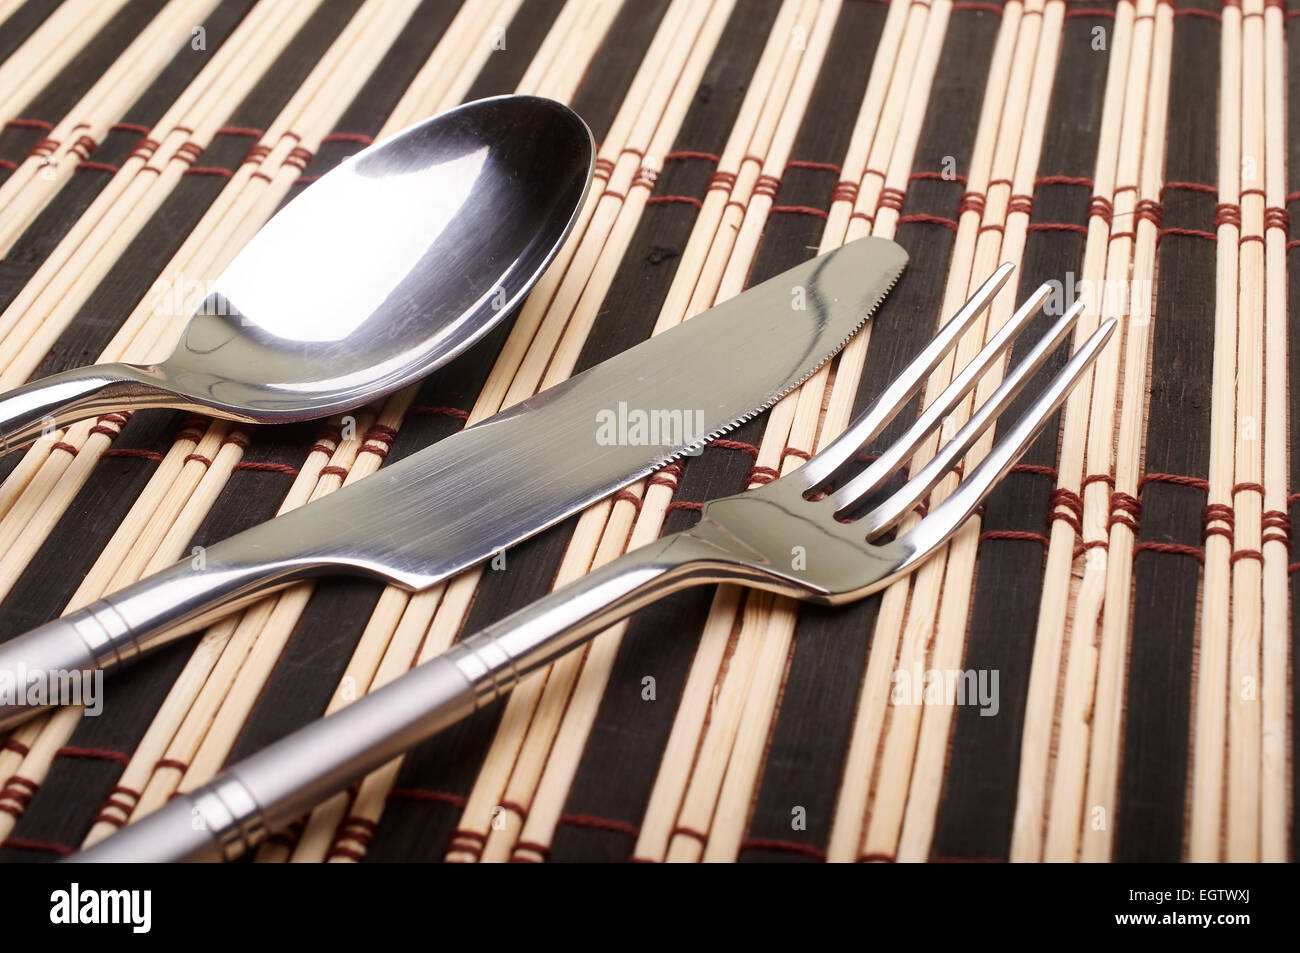 Cutlery on placemats Stock Photo